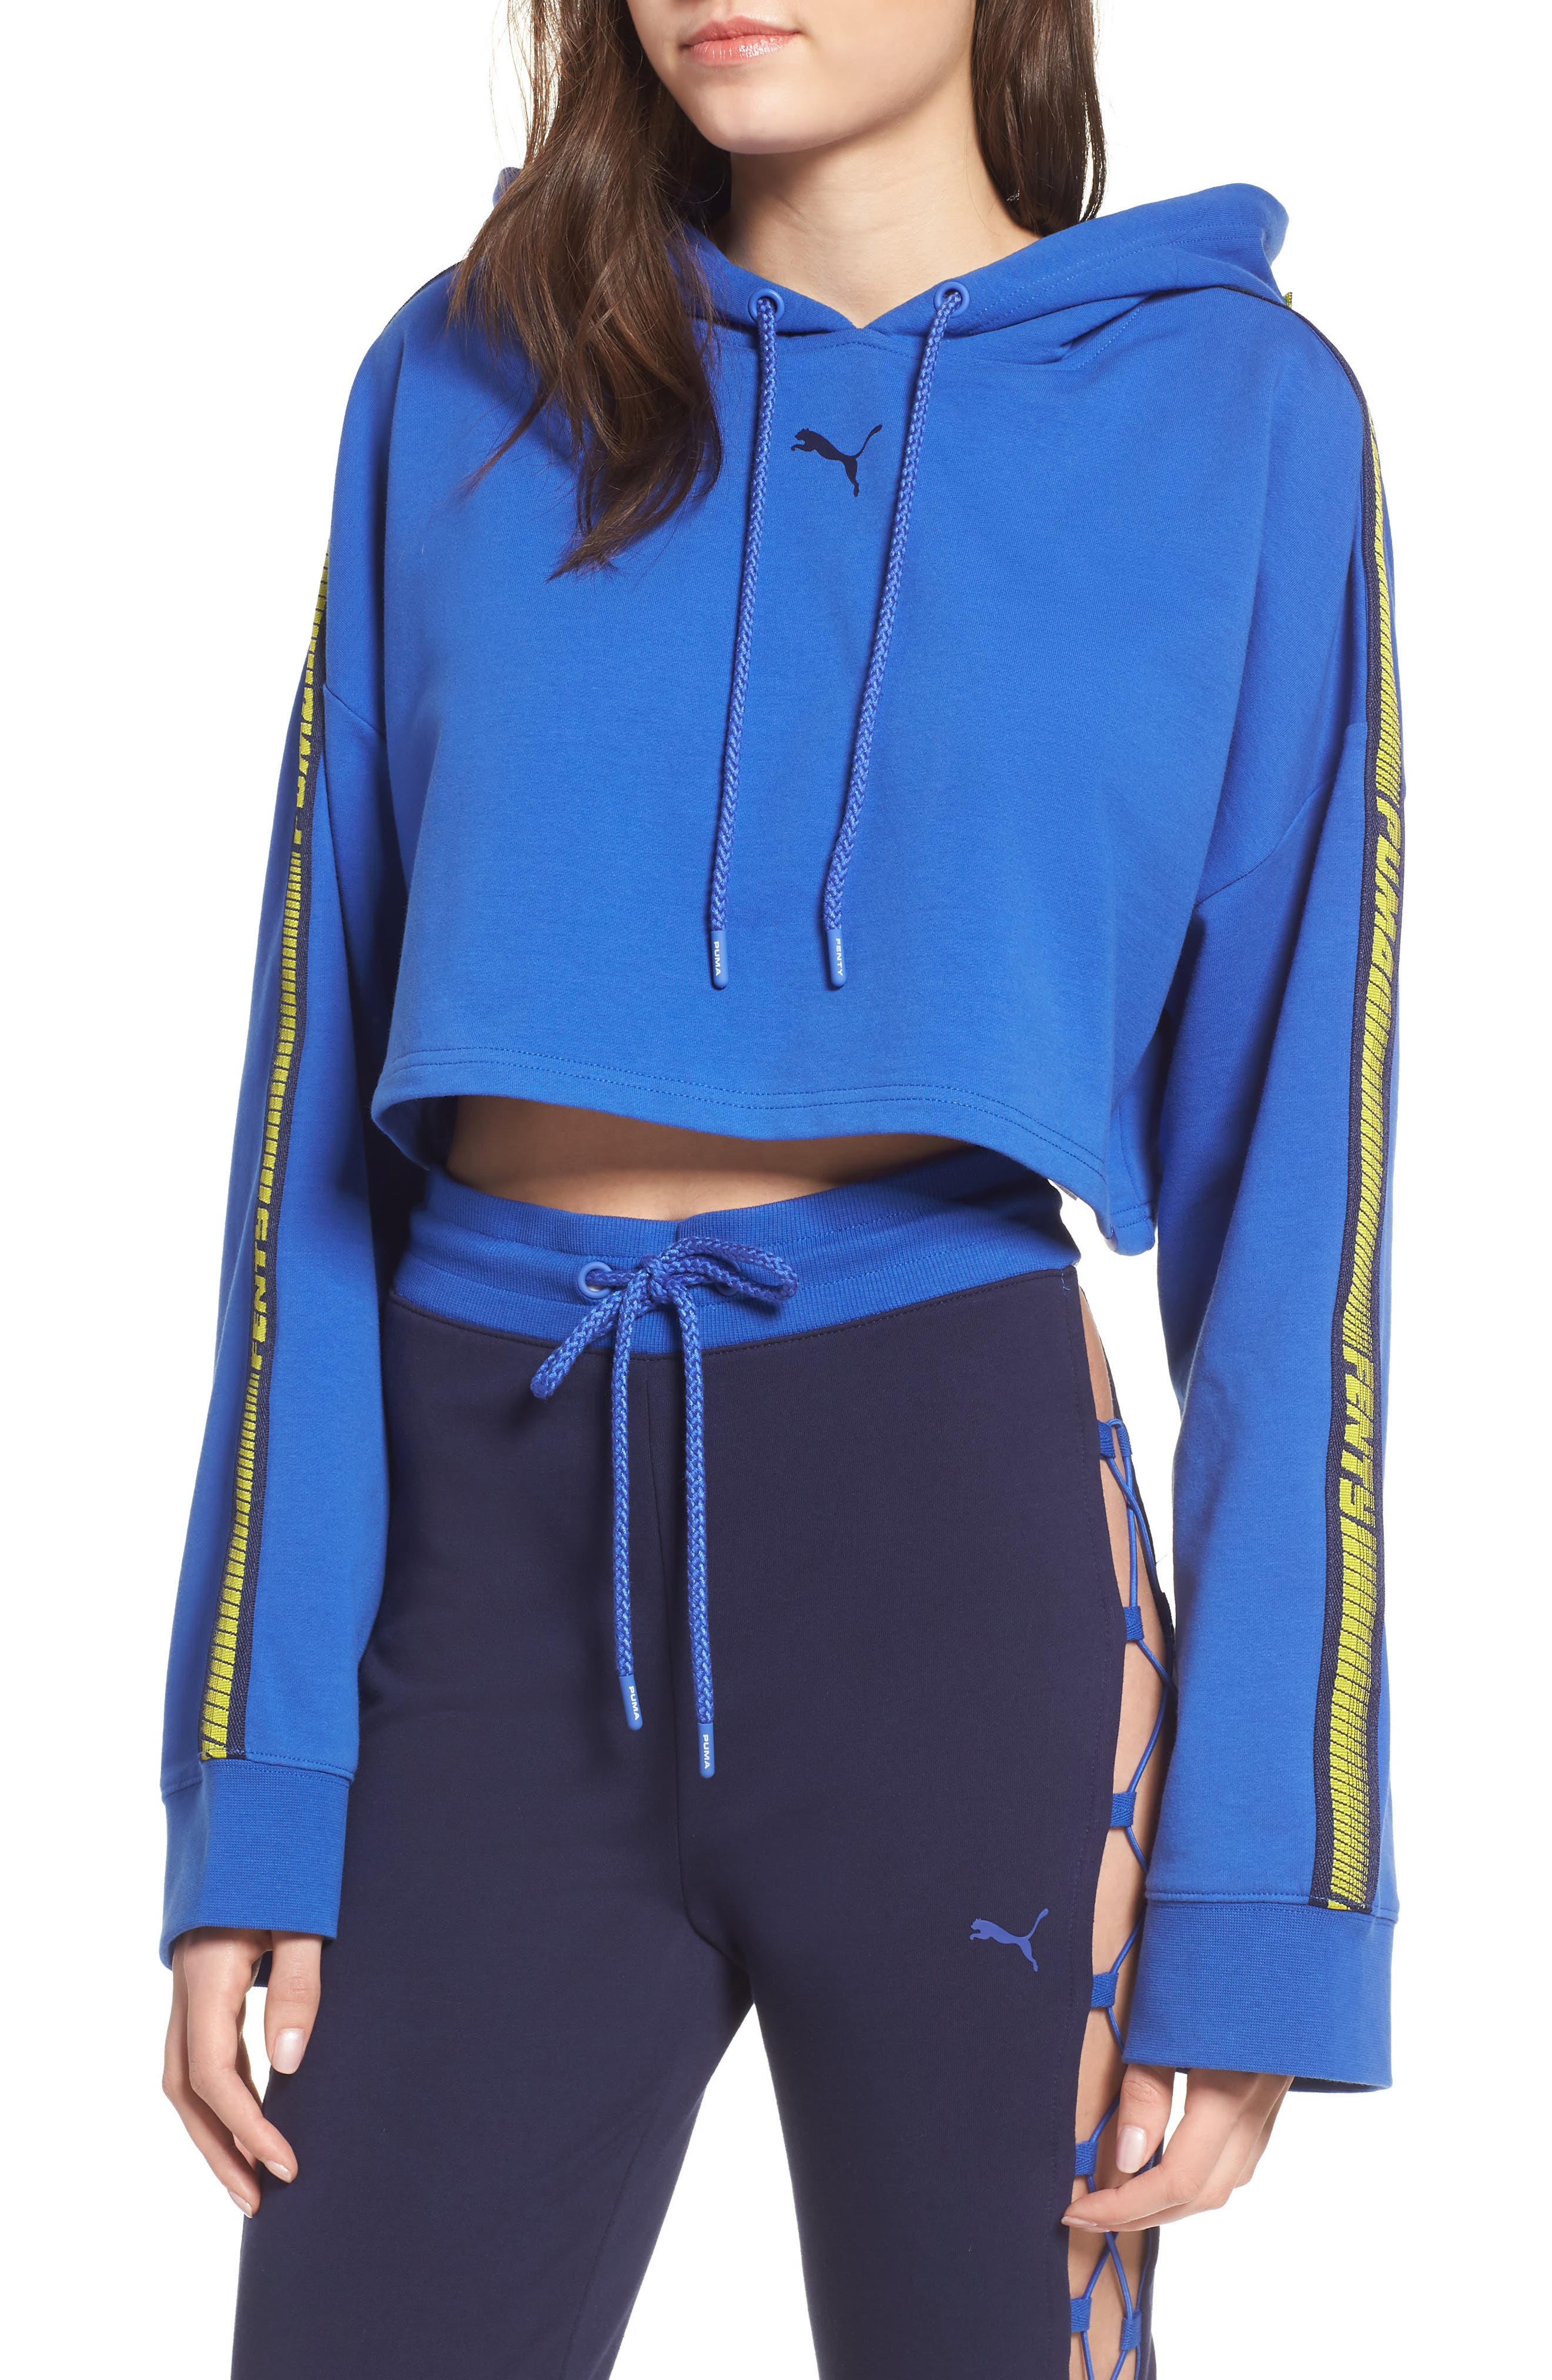 FENTY PUMA by Rihanna Hooded Crop Sweatshirt,                         Main,                         color, 400